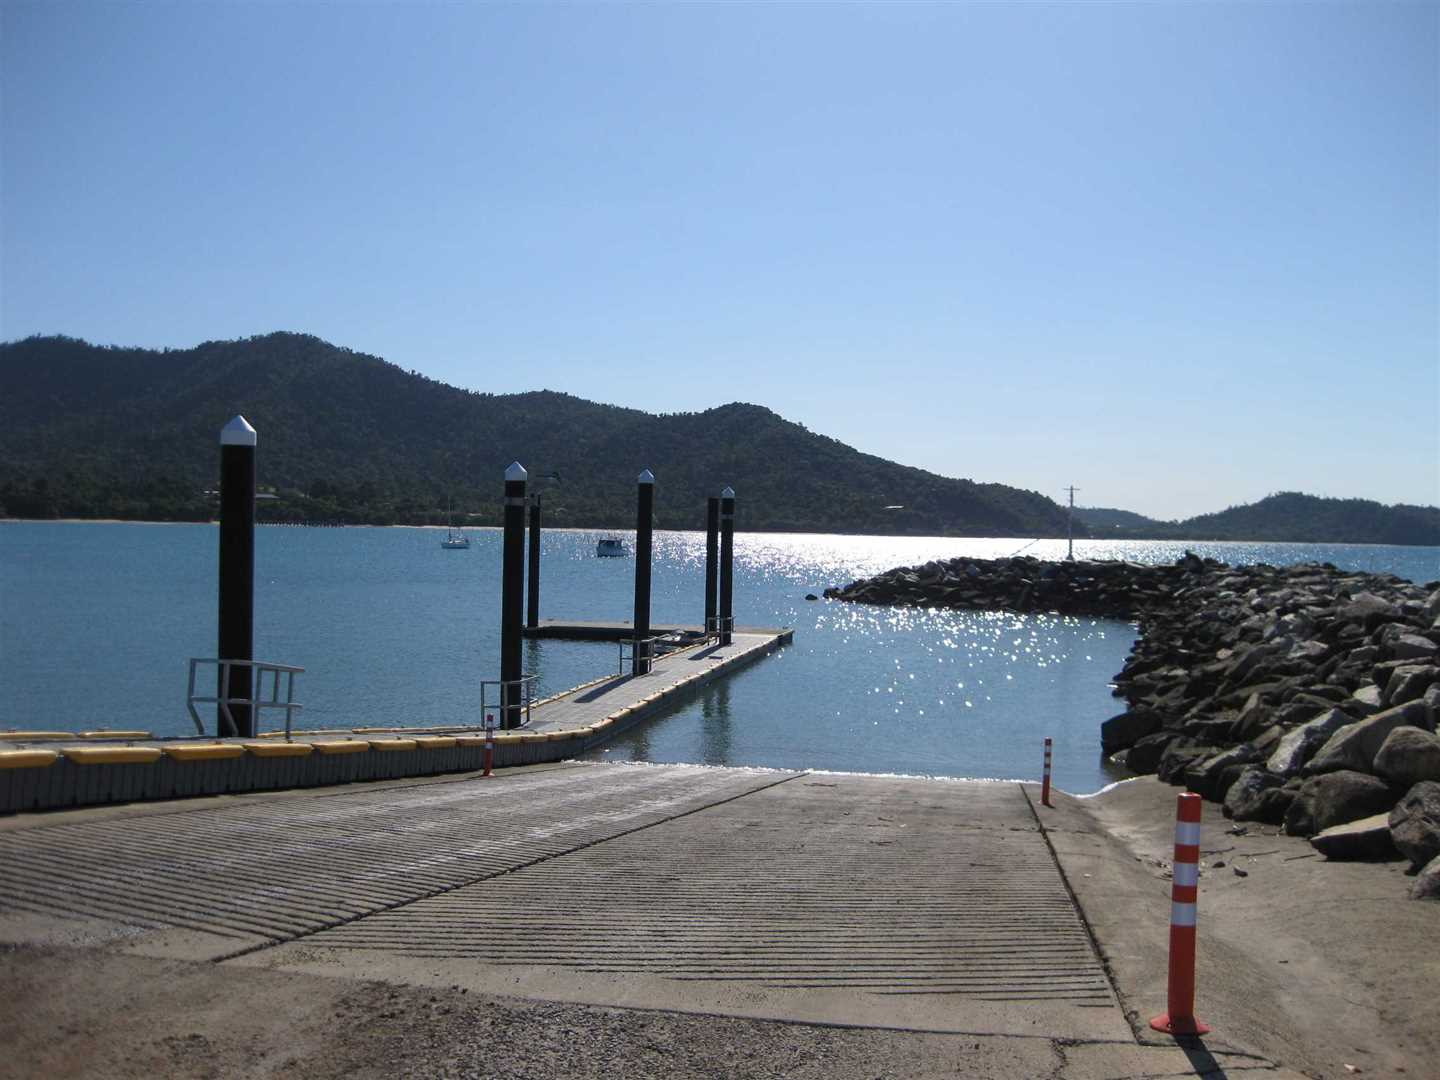 View of part of Clump Point public boat ramp approx. 2.3 km from the property